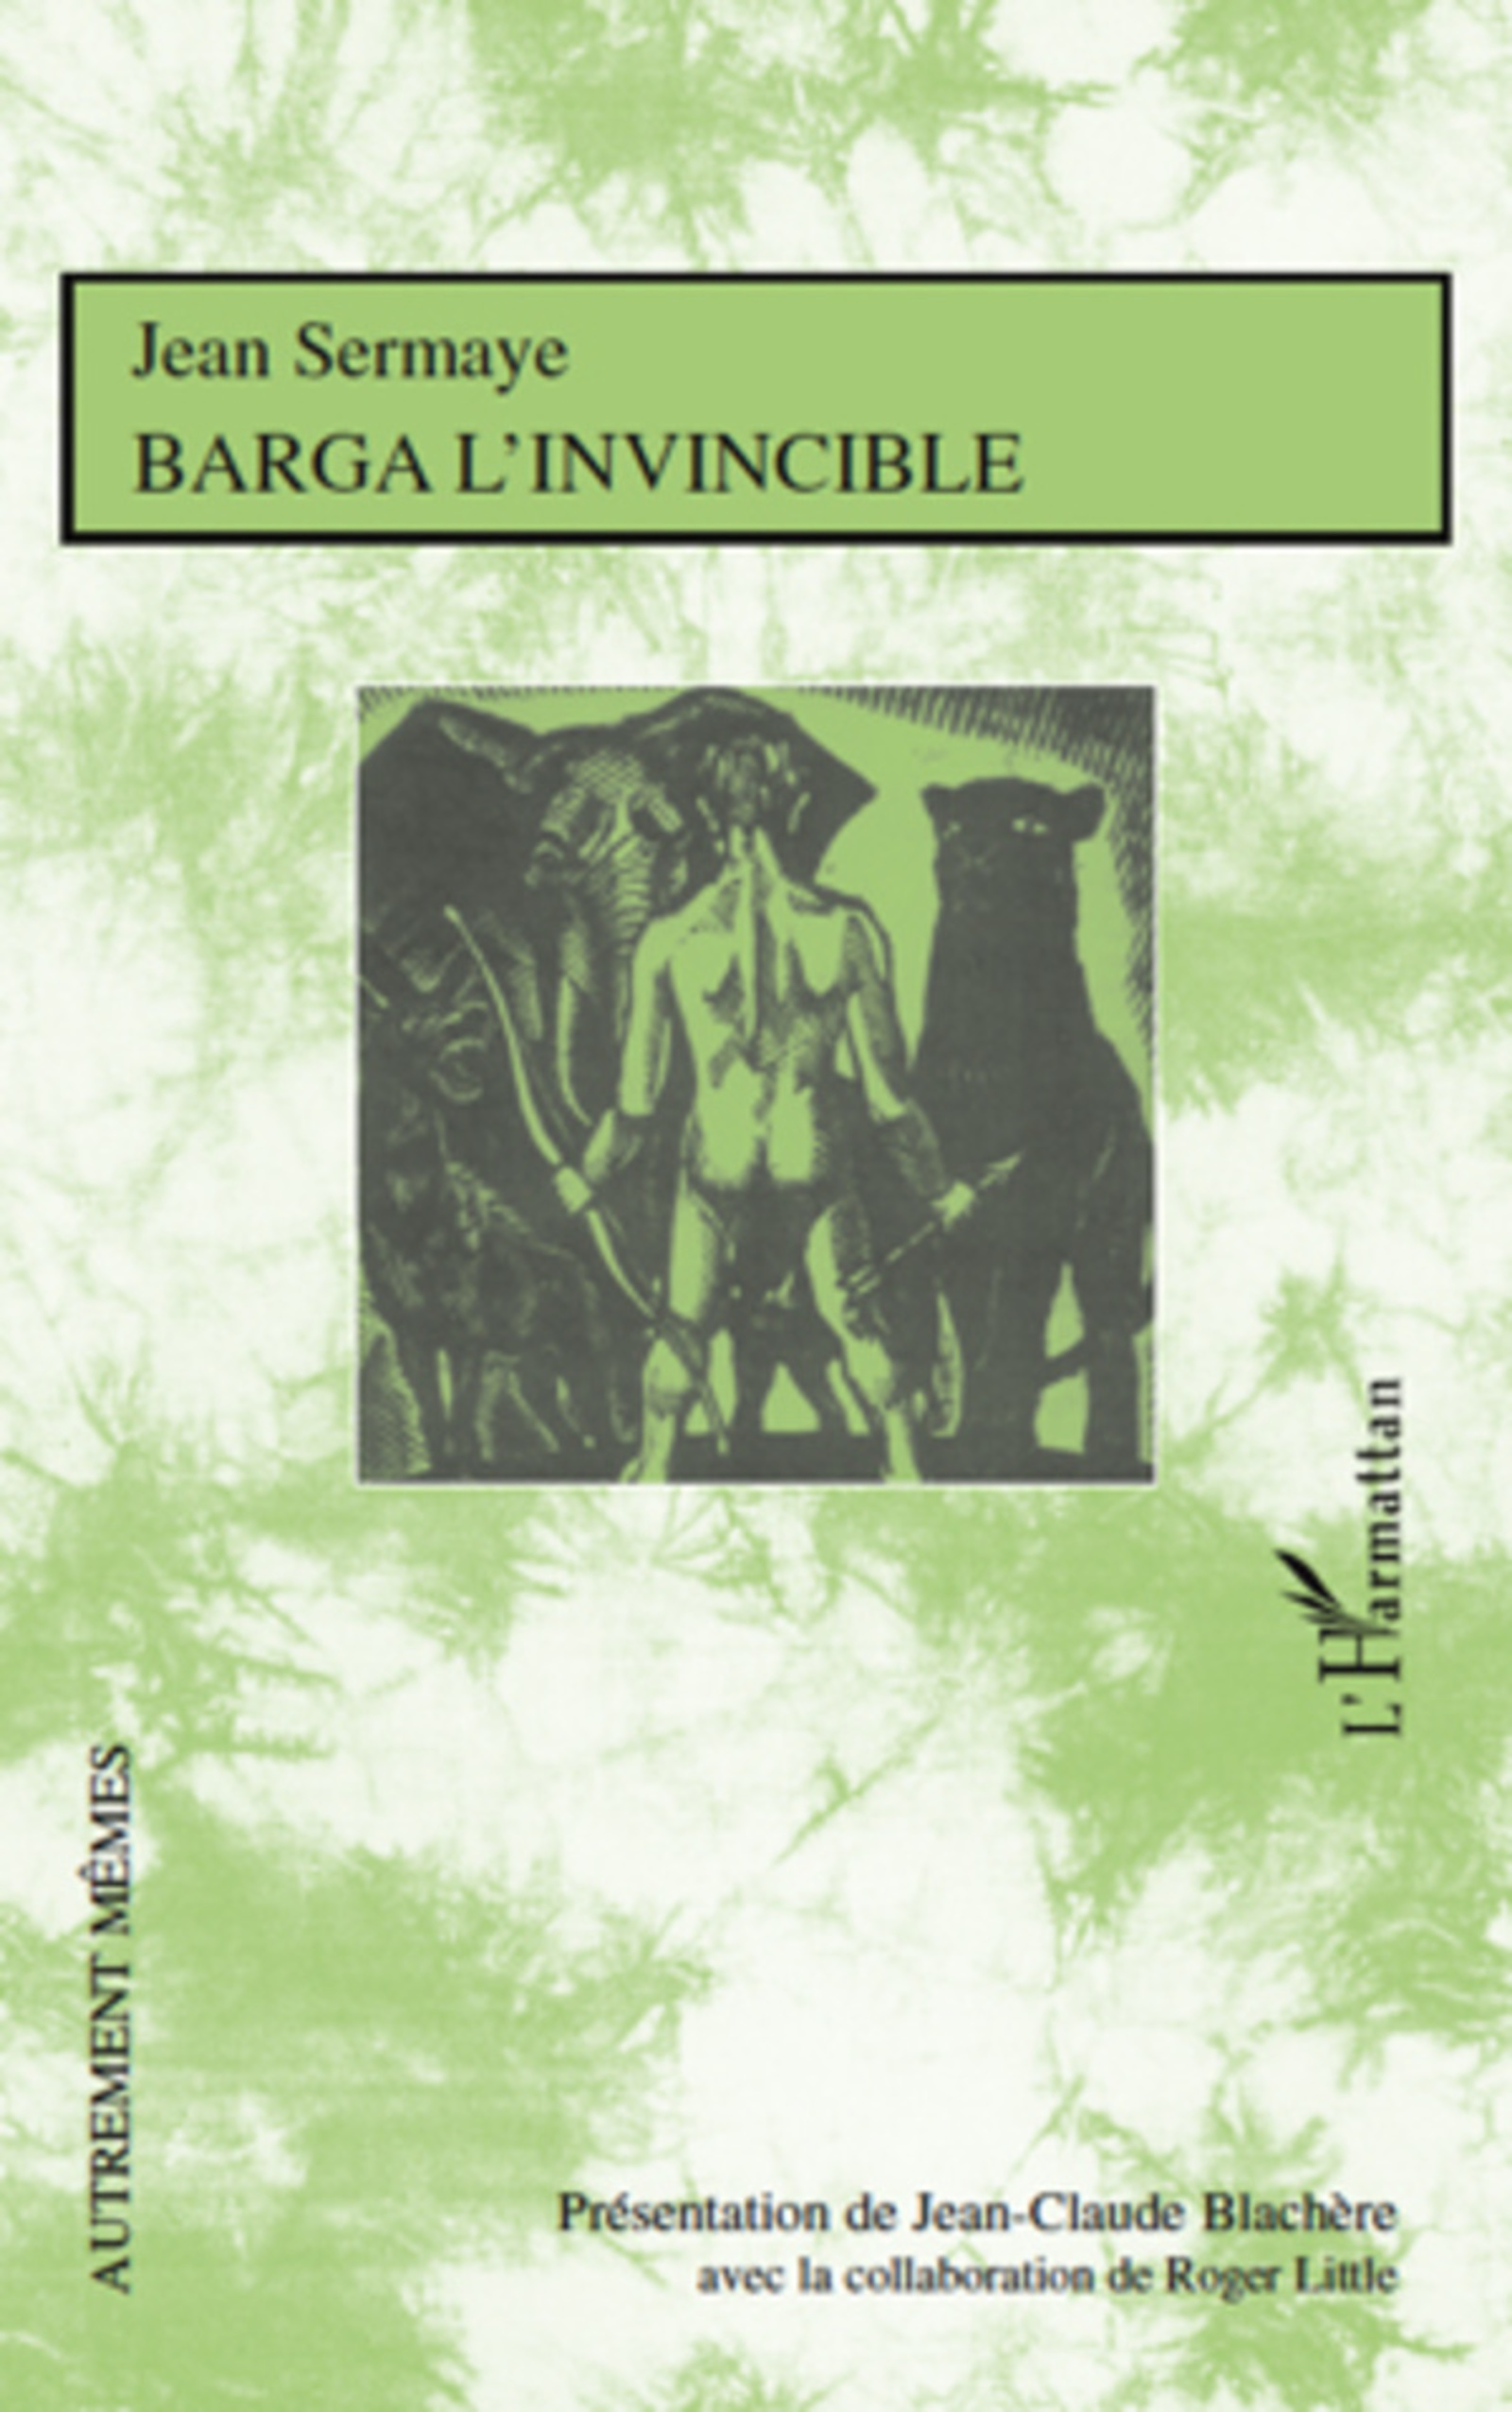 Barga l'invincible